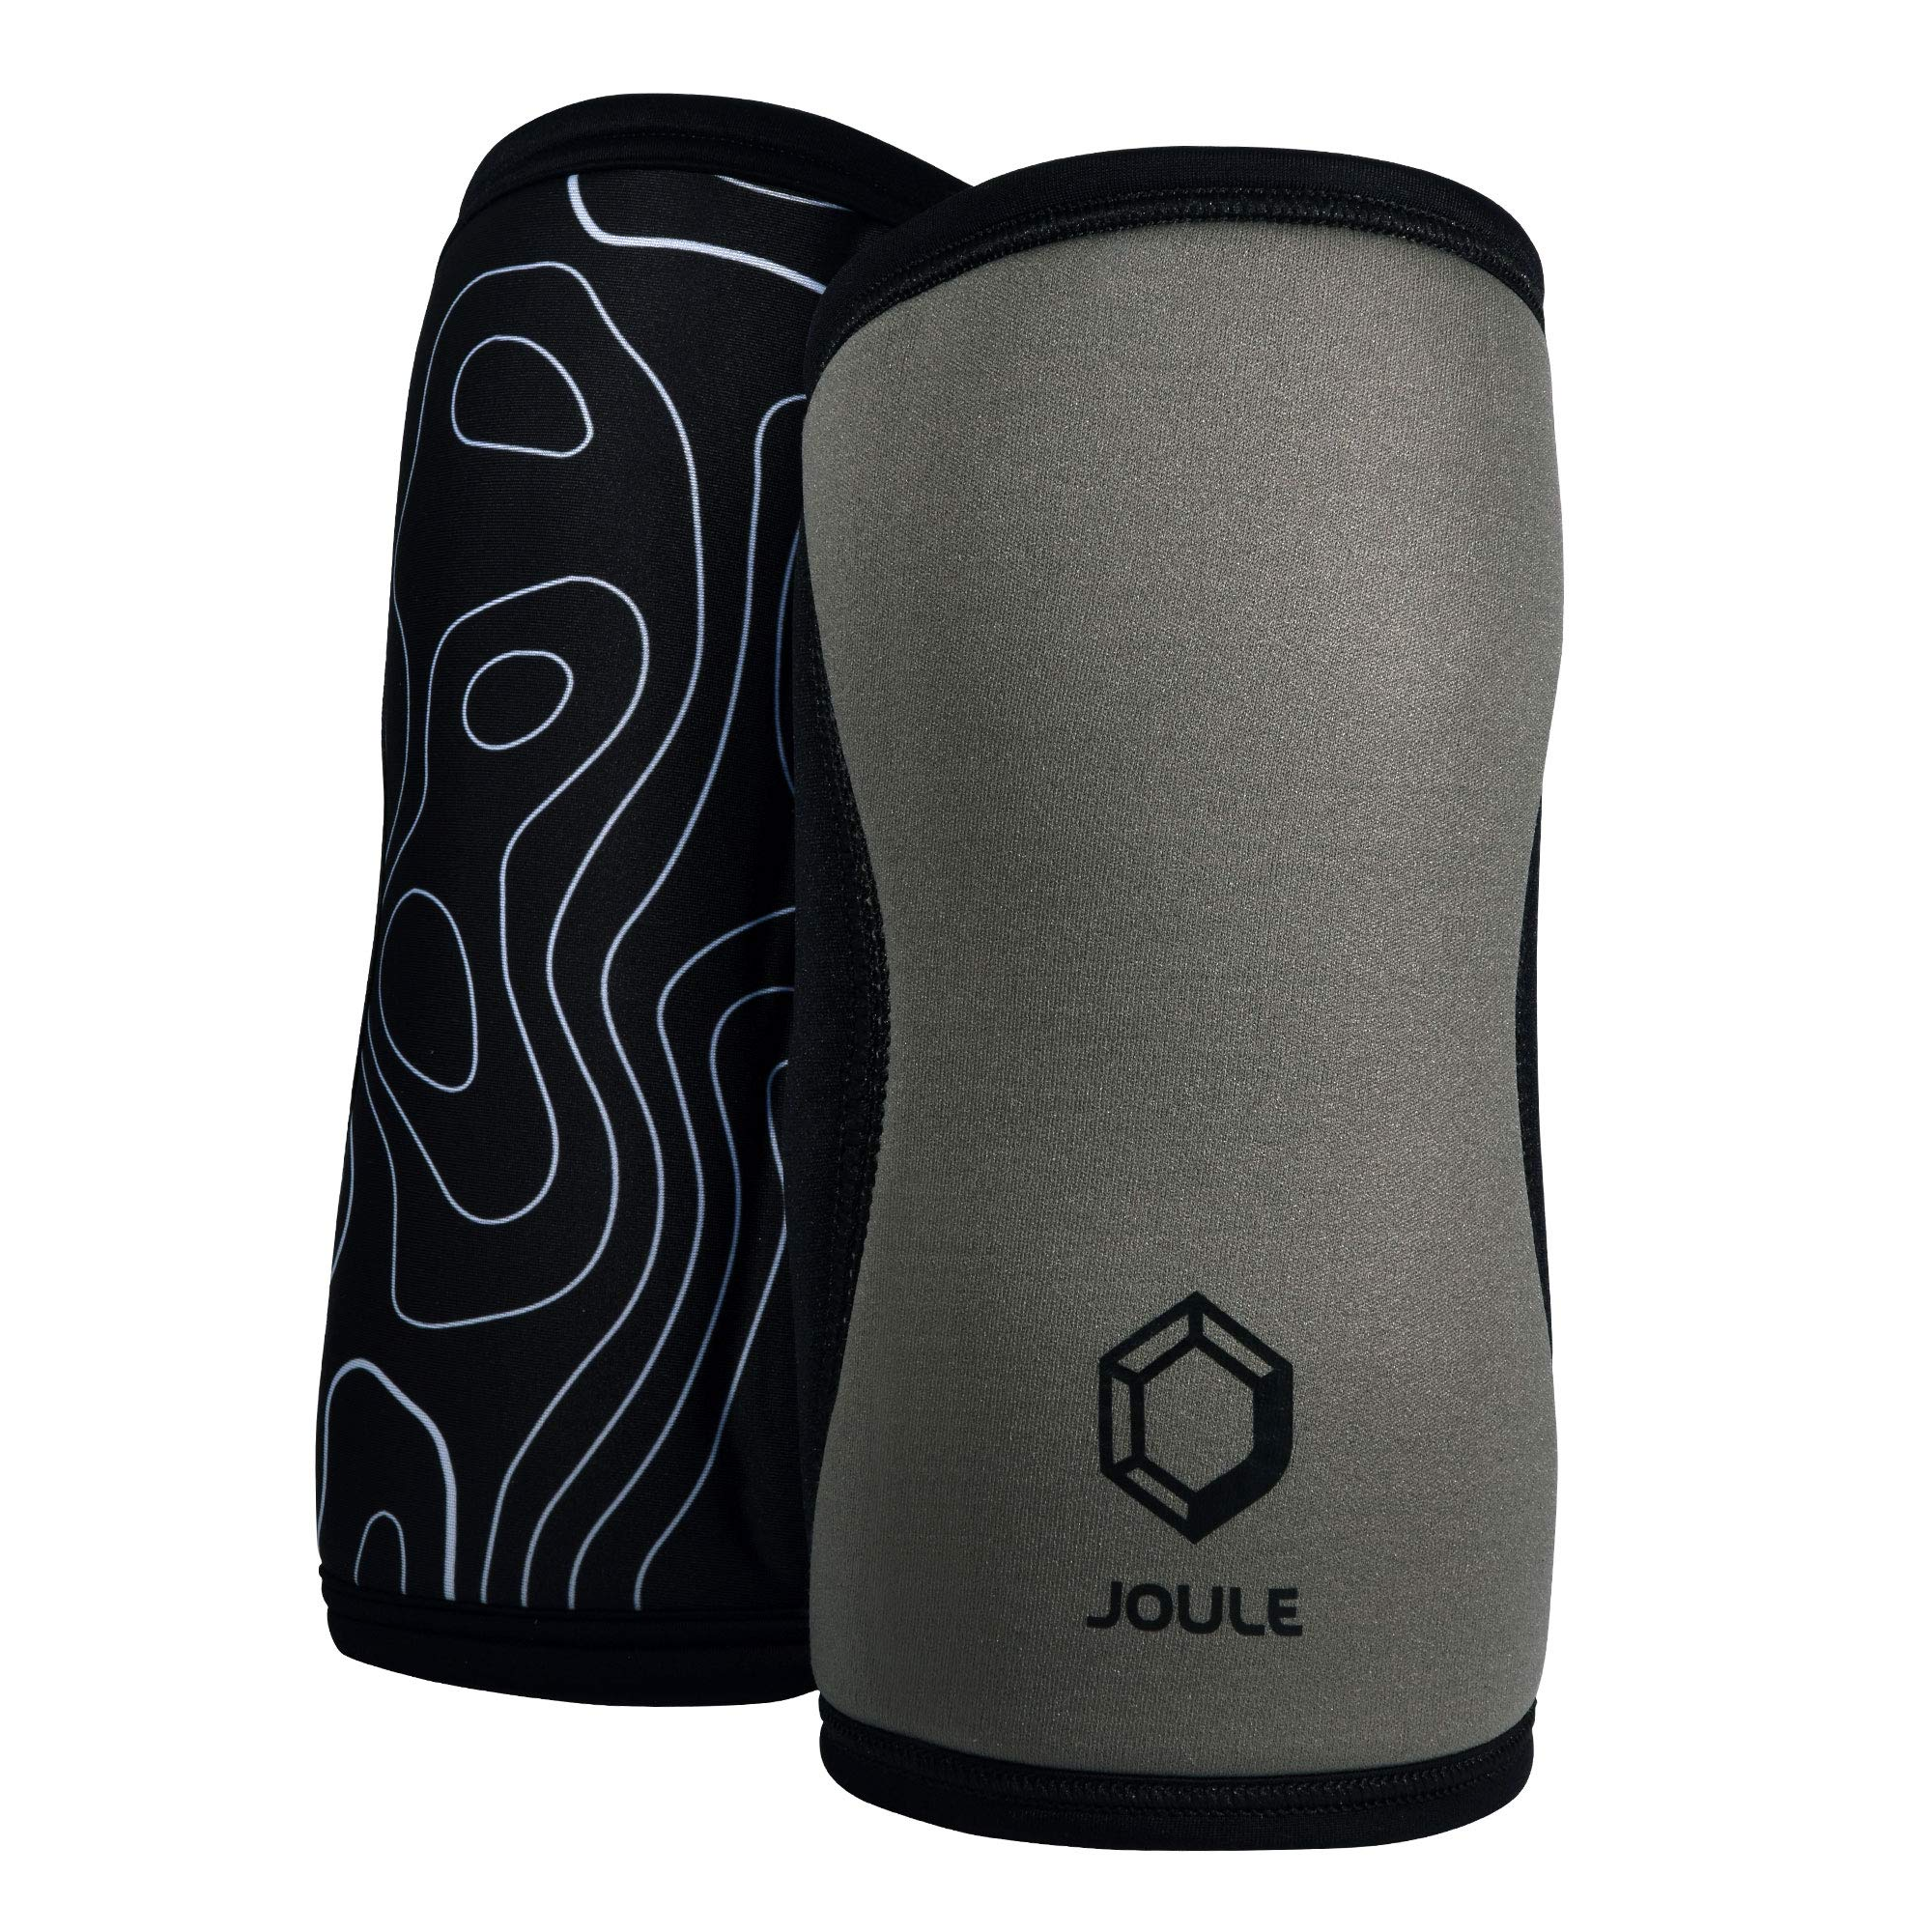 JOULE Active Reversible Knee Sleeve - 7mm Pair of 2 Neoprene Sleeves with Compression for Weightlifting, Powerlifting, and Crossfit - (Gray/Black, Small)